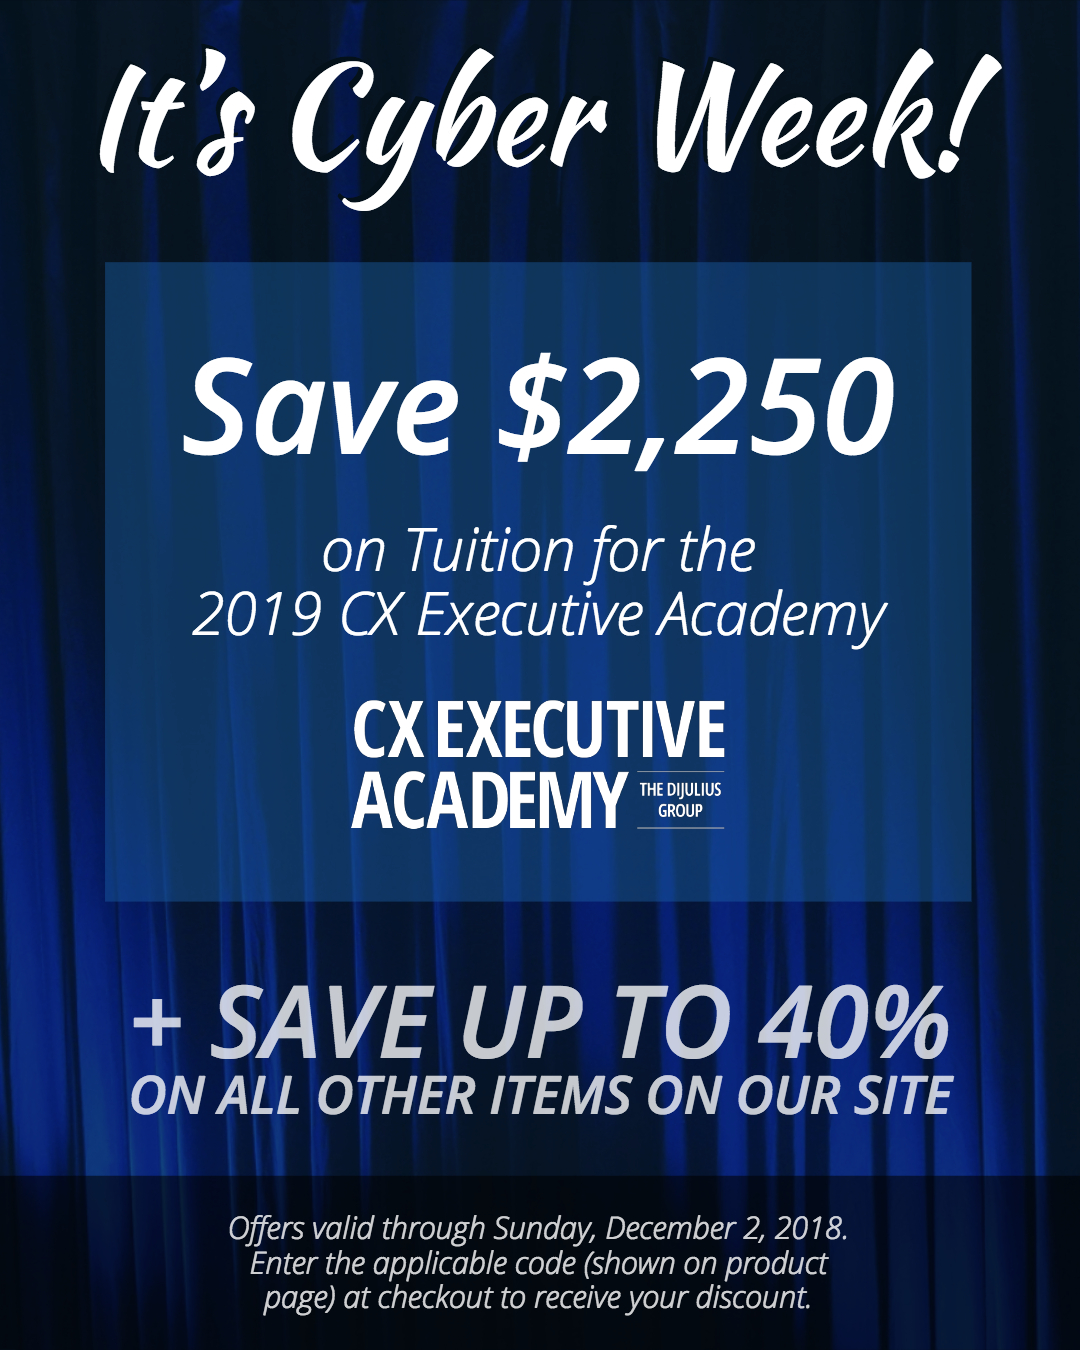 Cyber Week - Save $2,250 on the CX Customer Experience Executive Academy